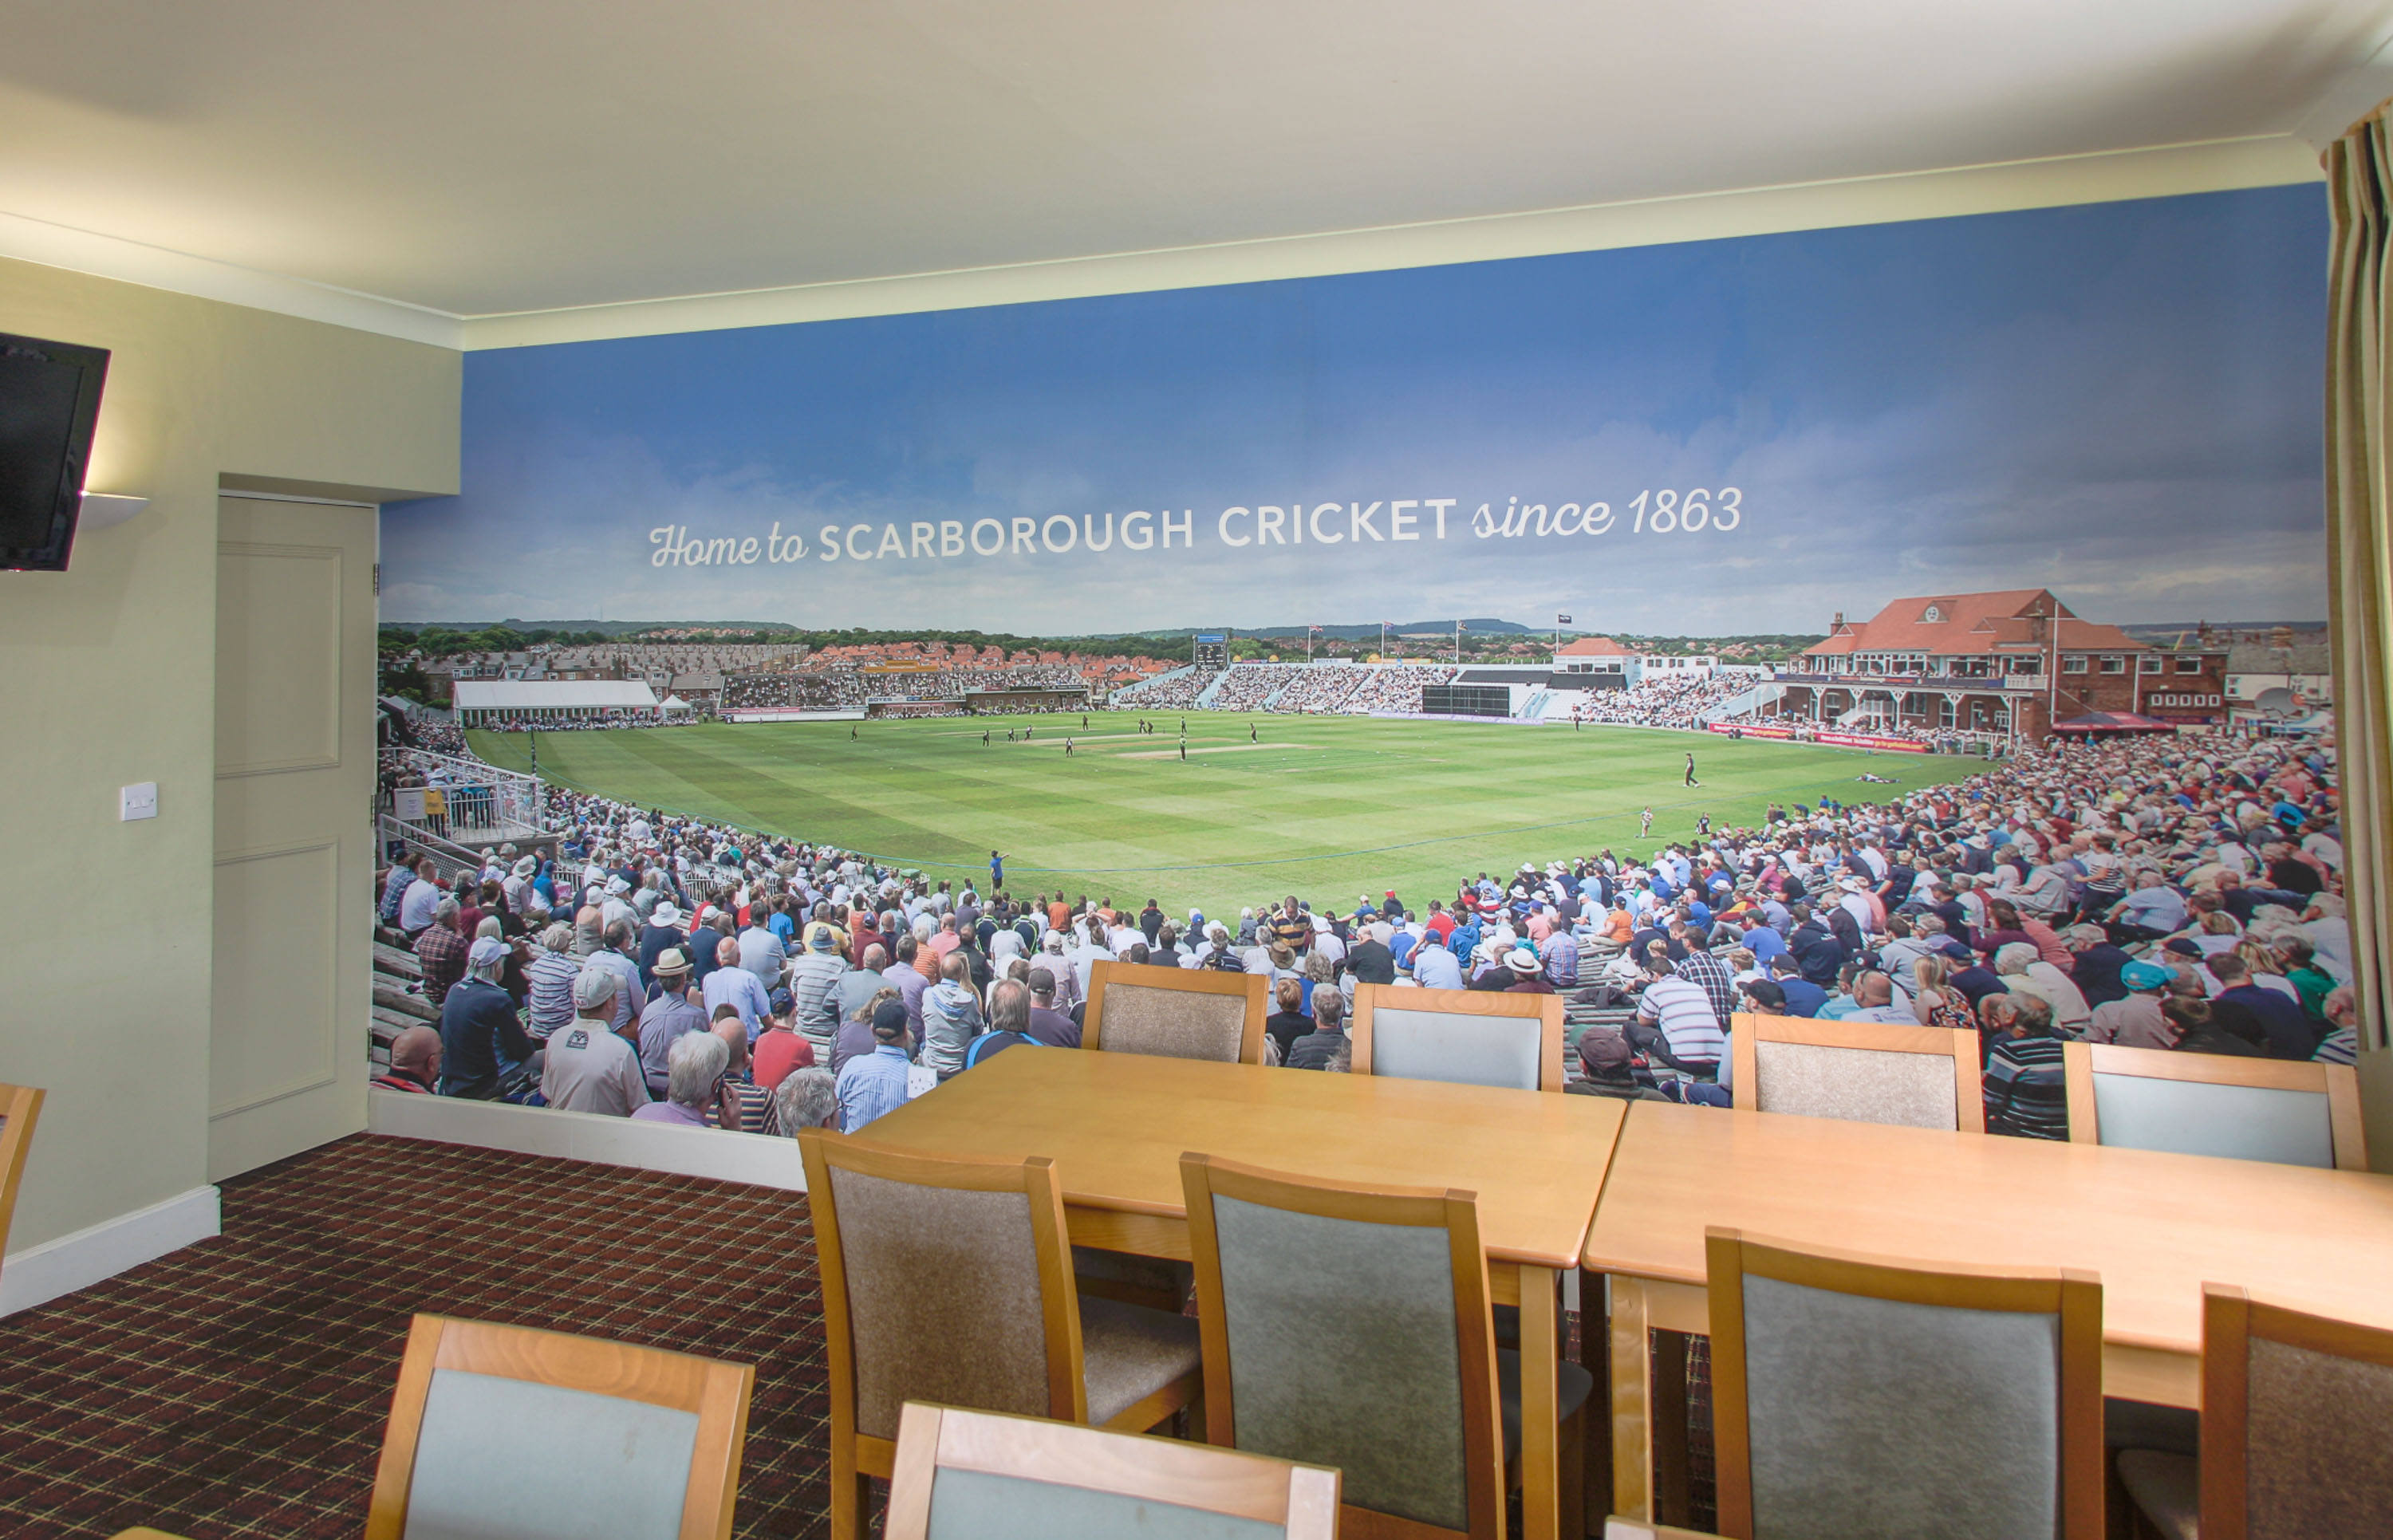 Scarborough Cricket Club Wallpaper Murals